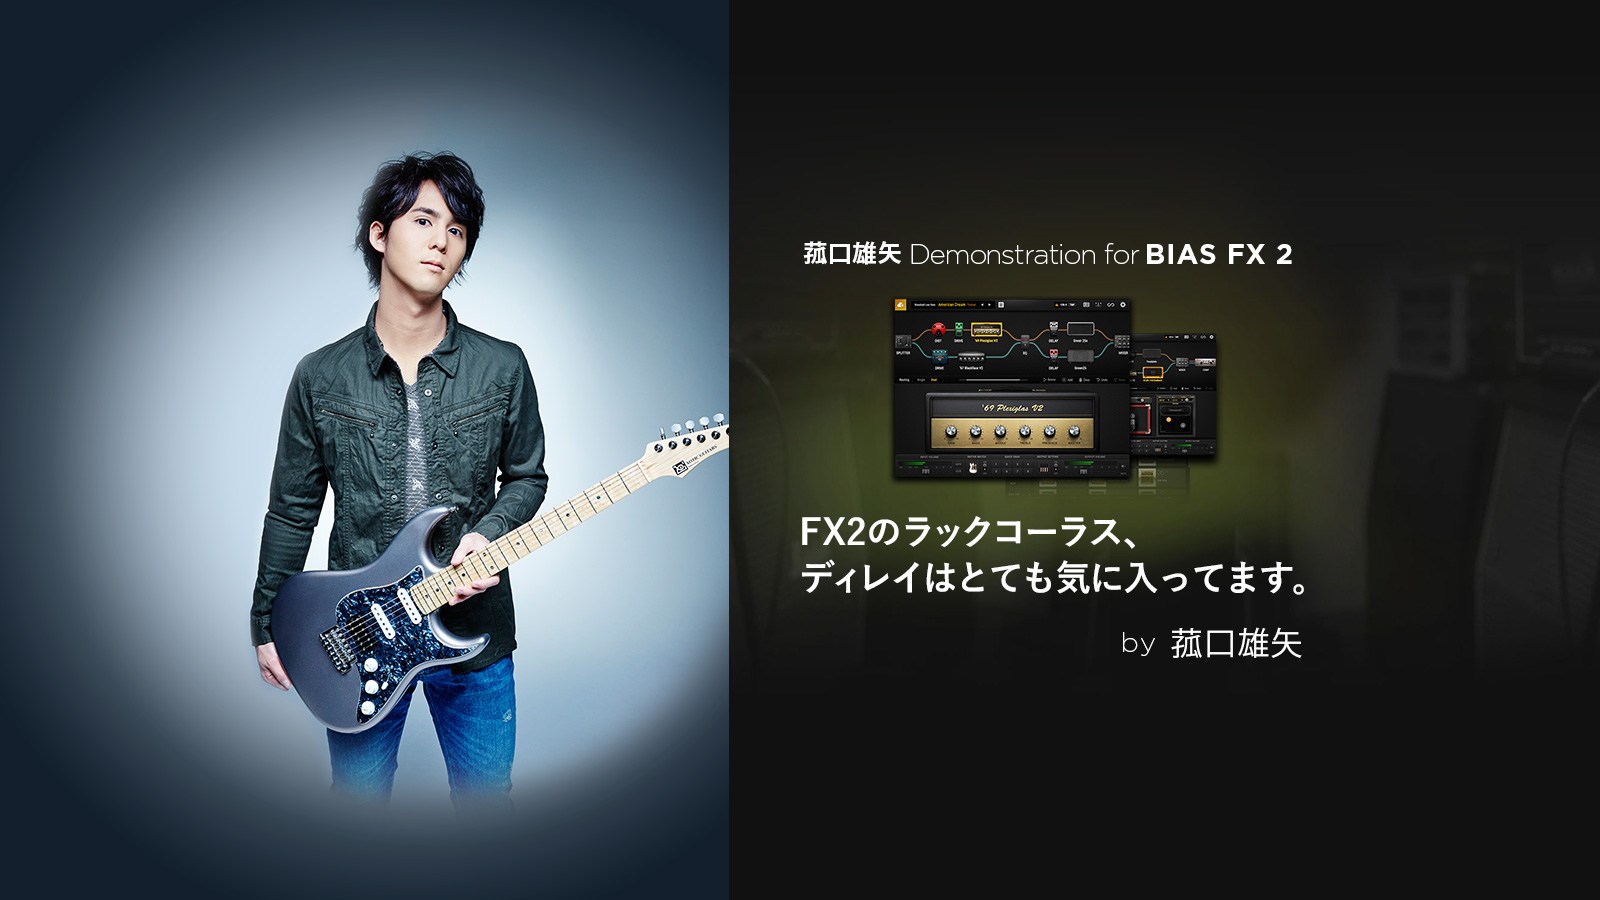 菰口雄矢 Demonstration for BIAS FX 2